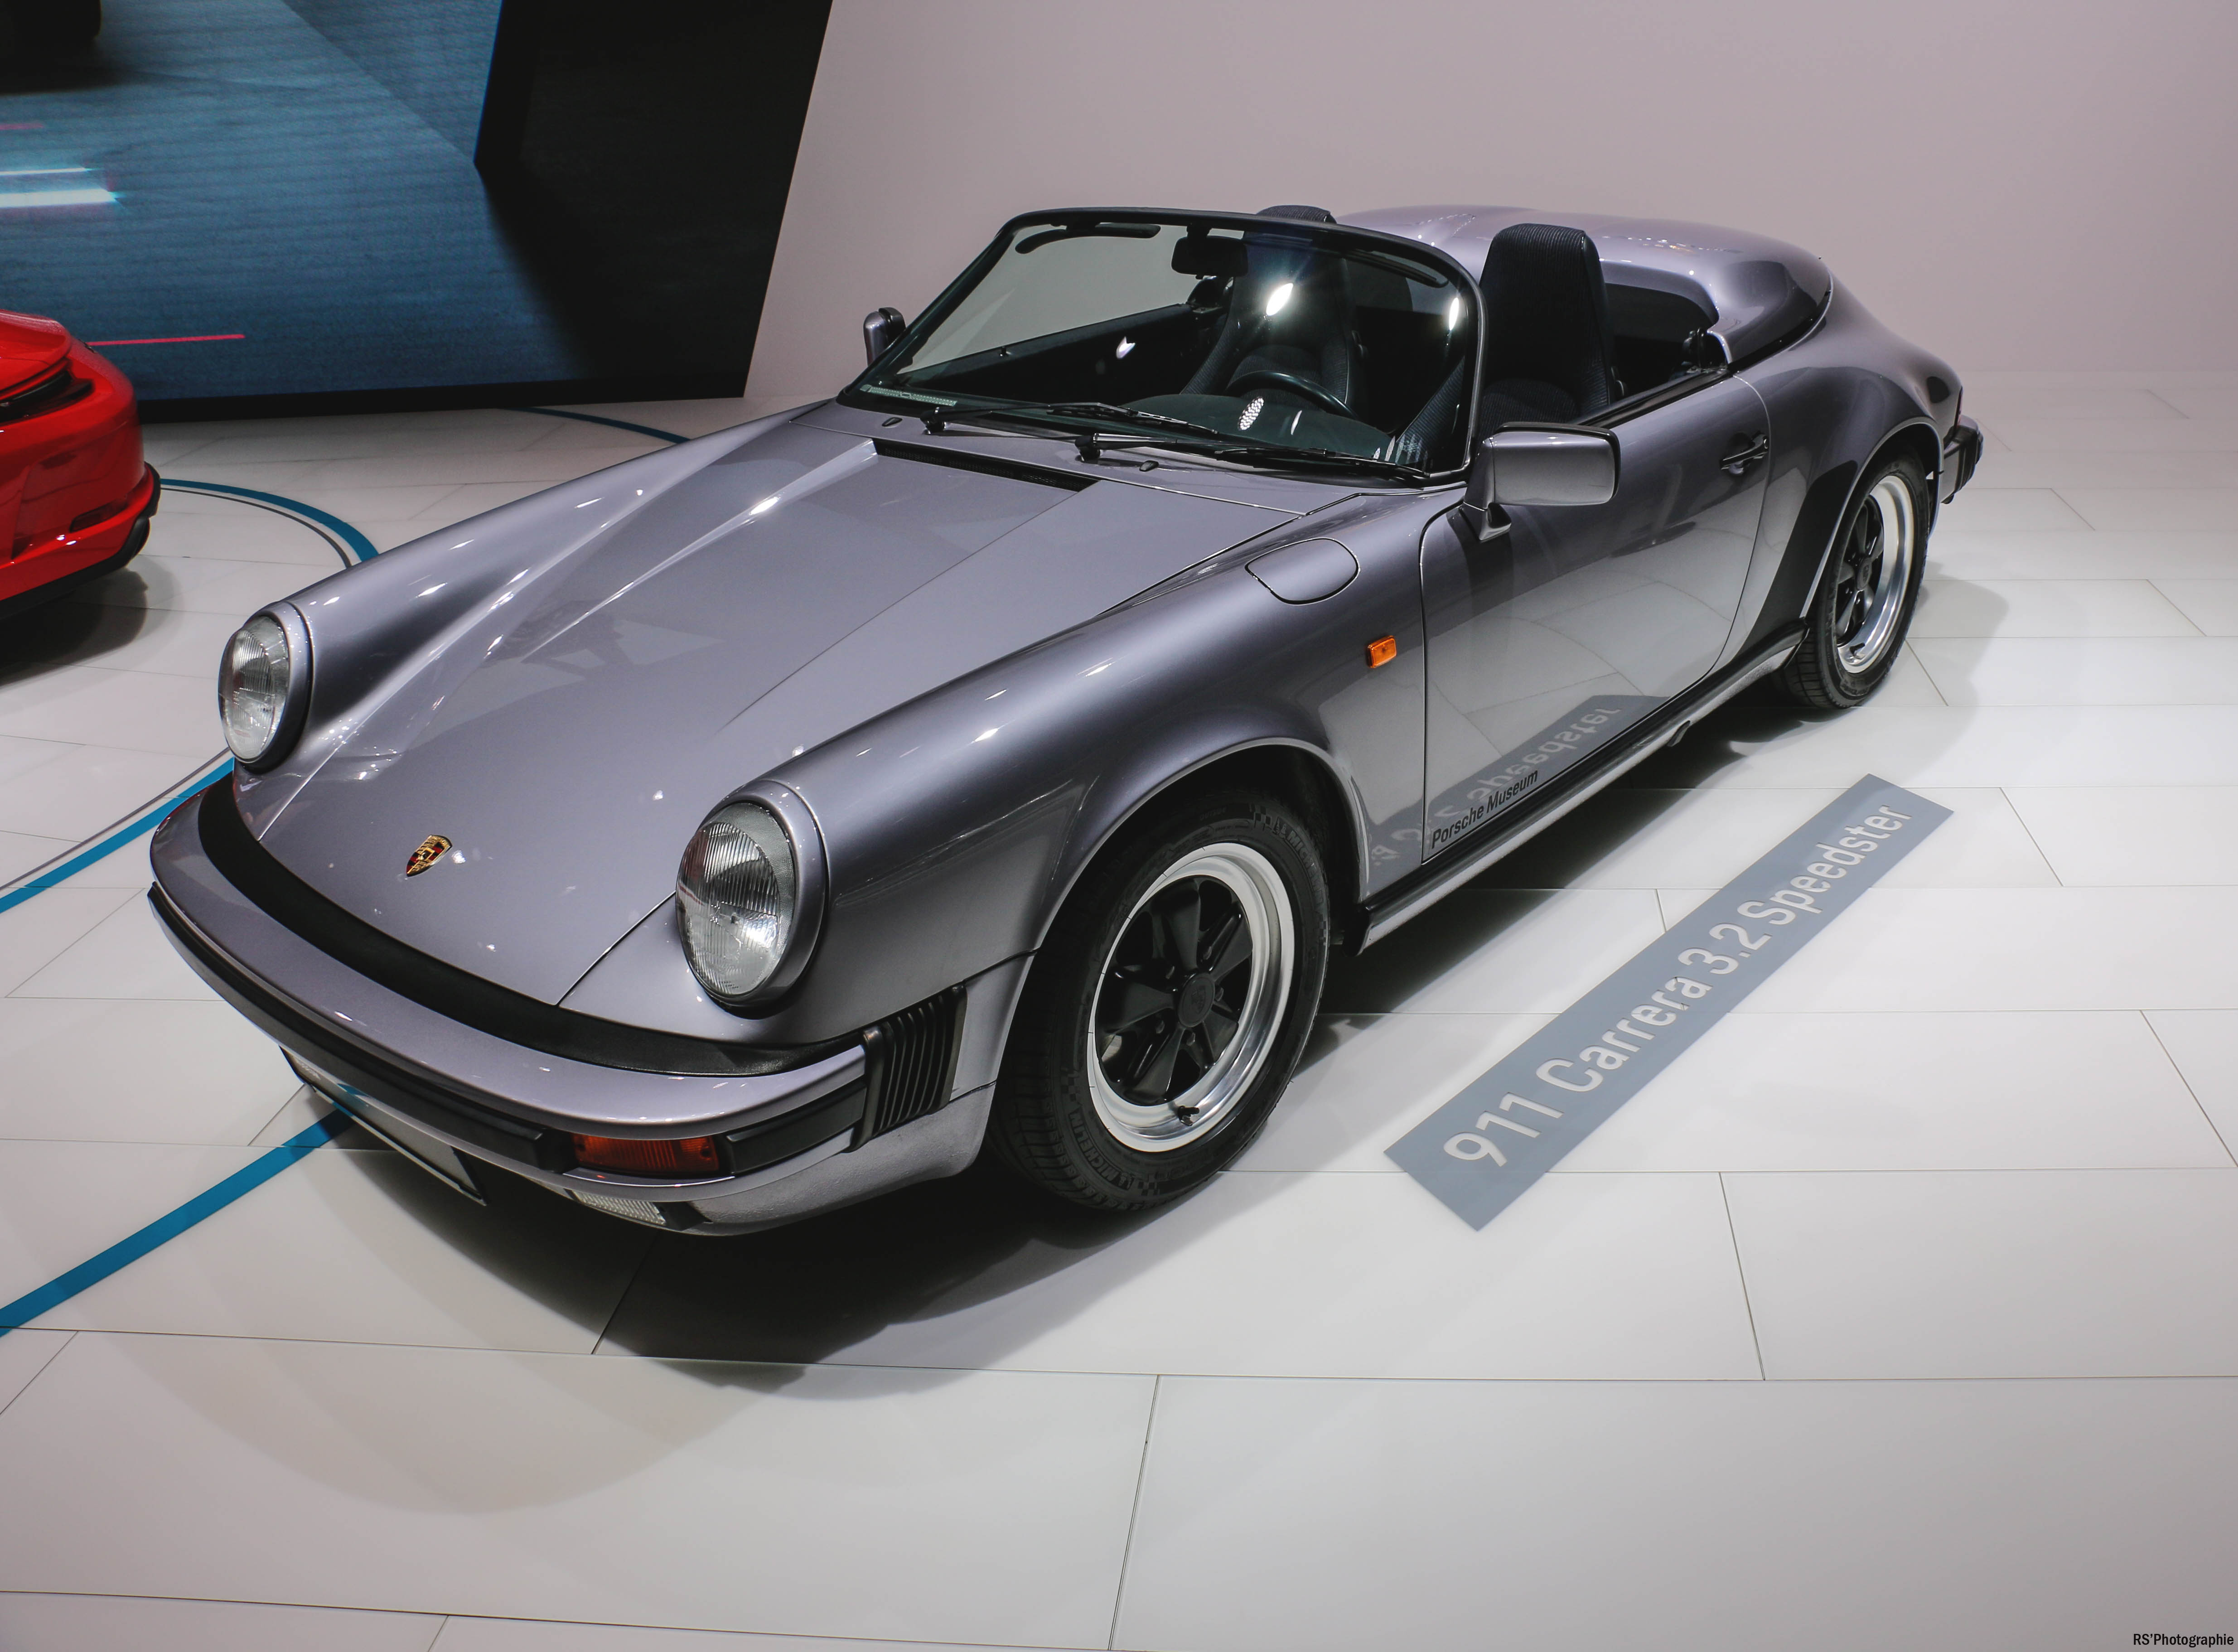 Porsche 911 Carrera Speedster - Paris Motor Show - 2018 - Mondial Auto - photo by Arnaud Demasier RS Photographie